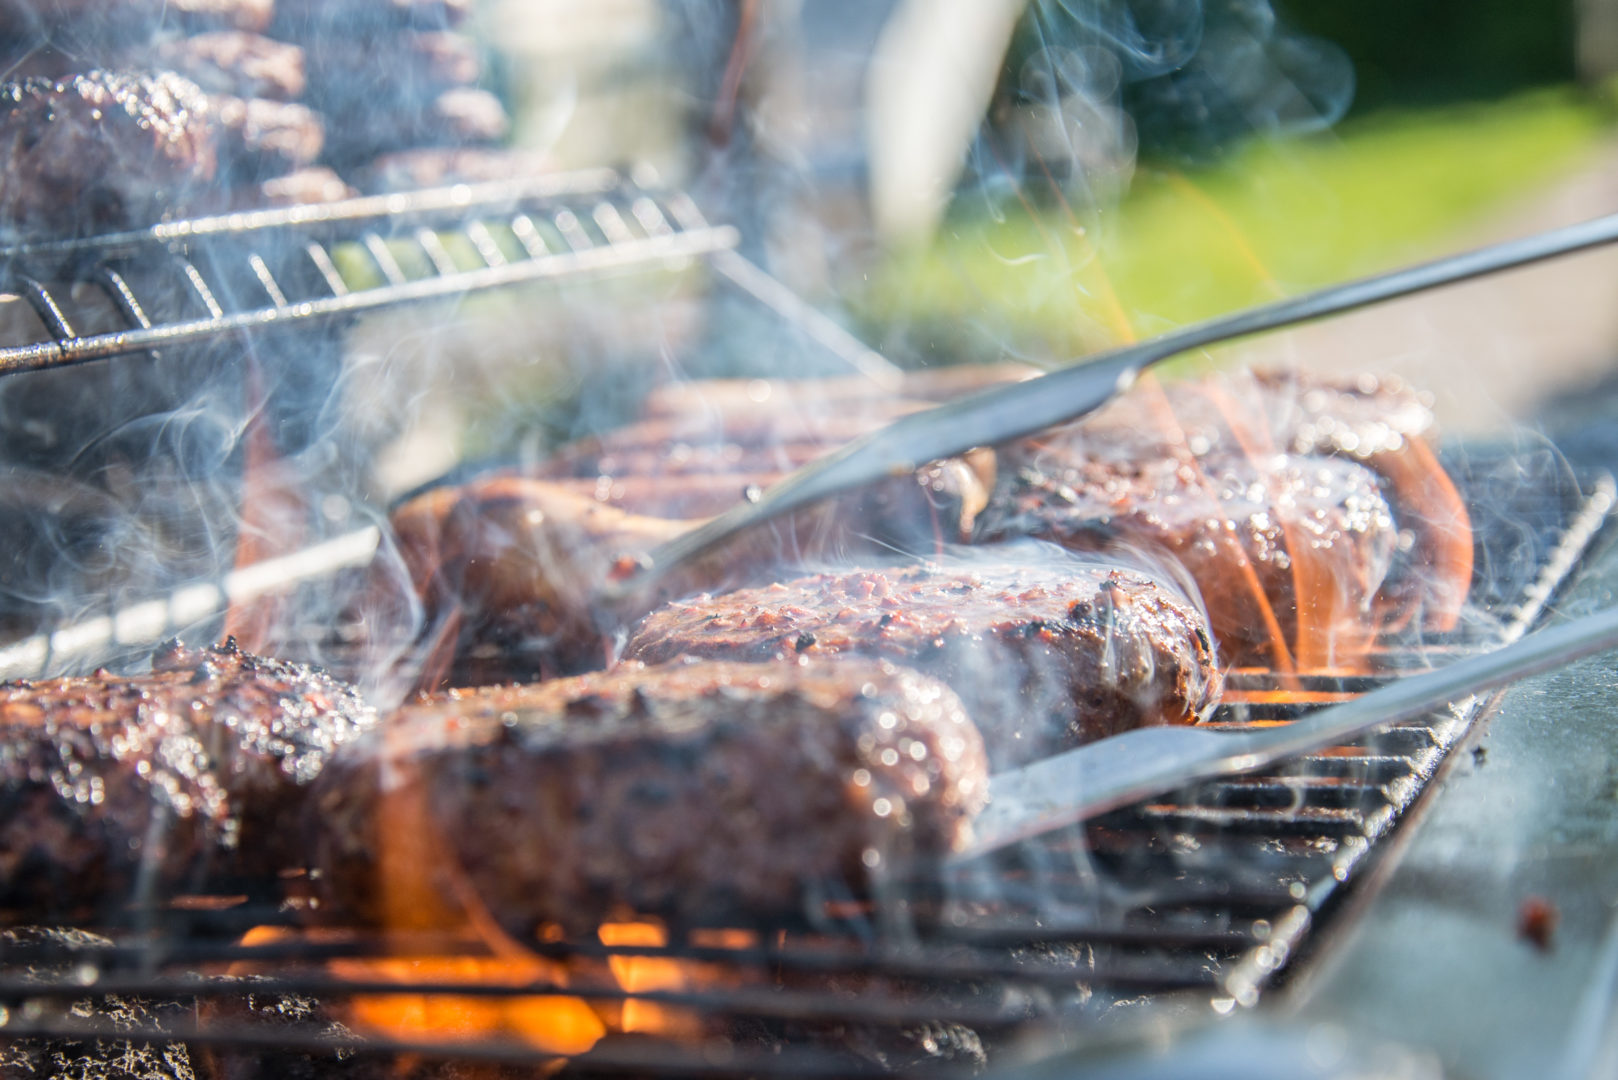 Beef cooking on barbeque